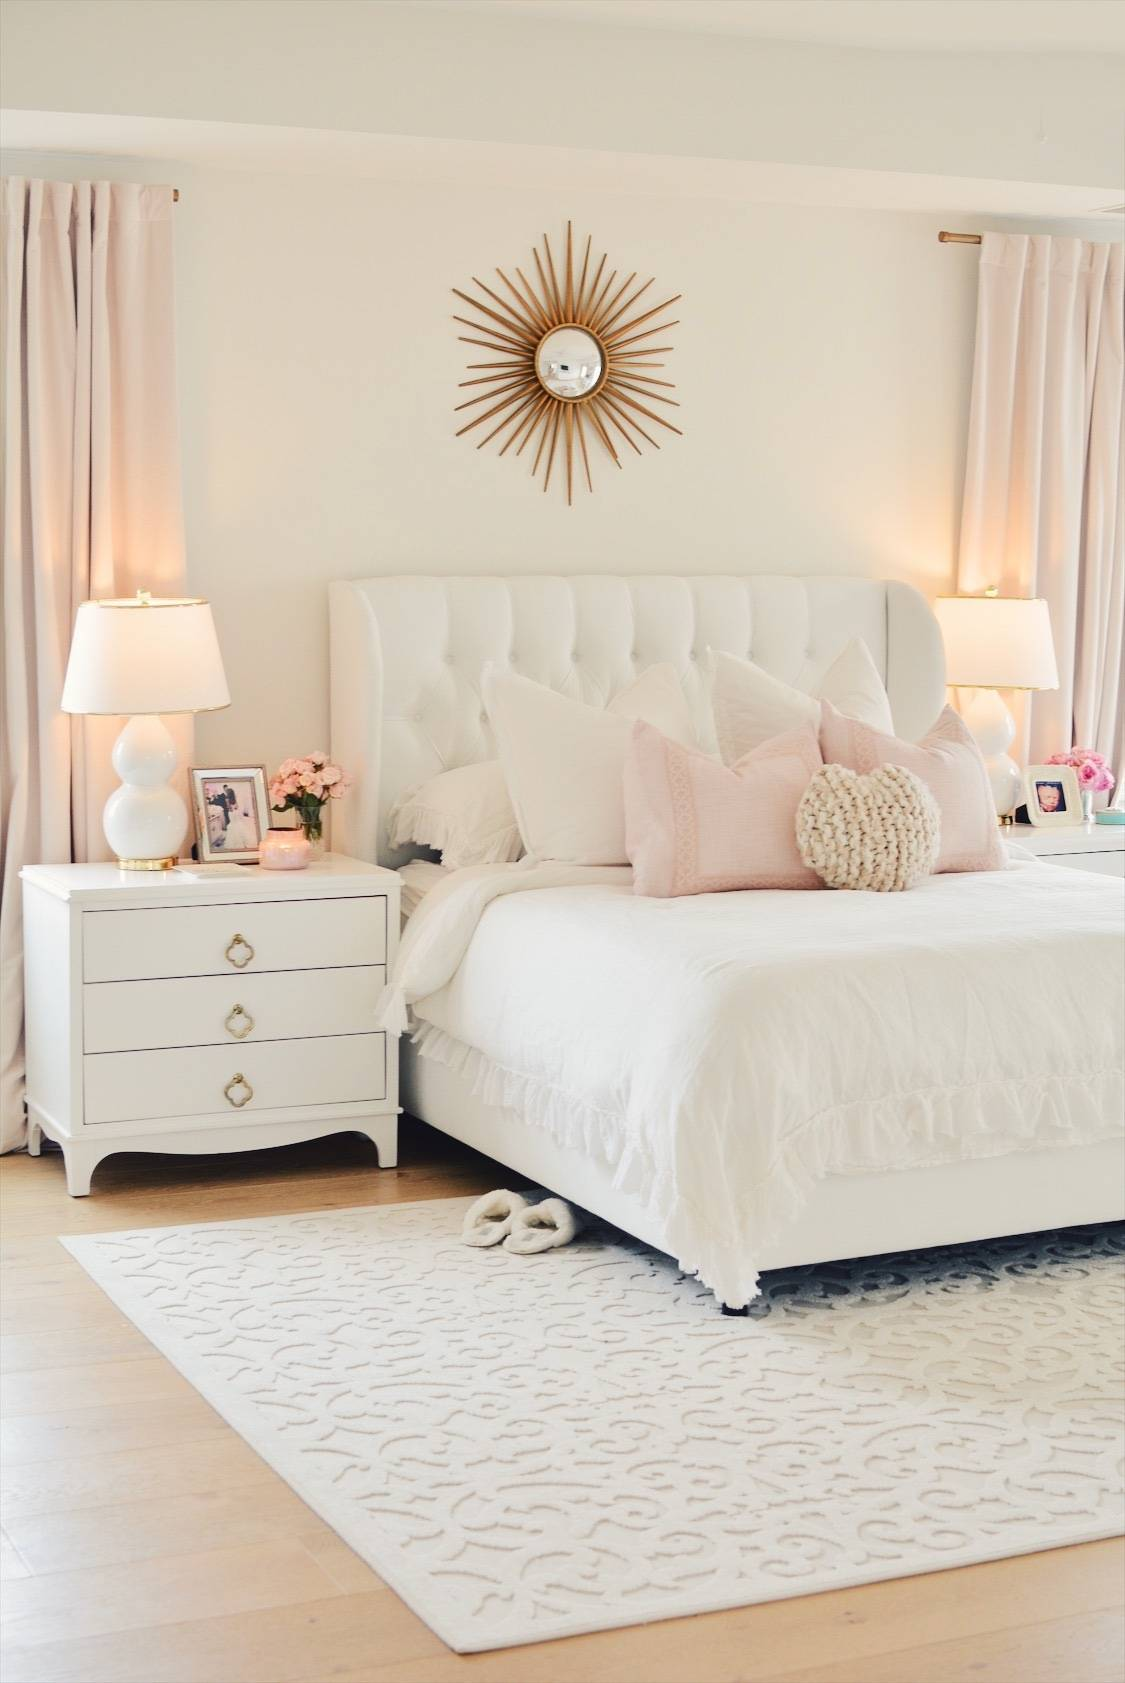 Master Bedroom Rug: Orian Seaborn Rug Review: My New White Master Bedroom Rug